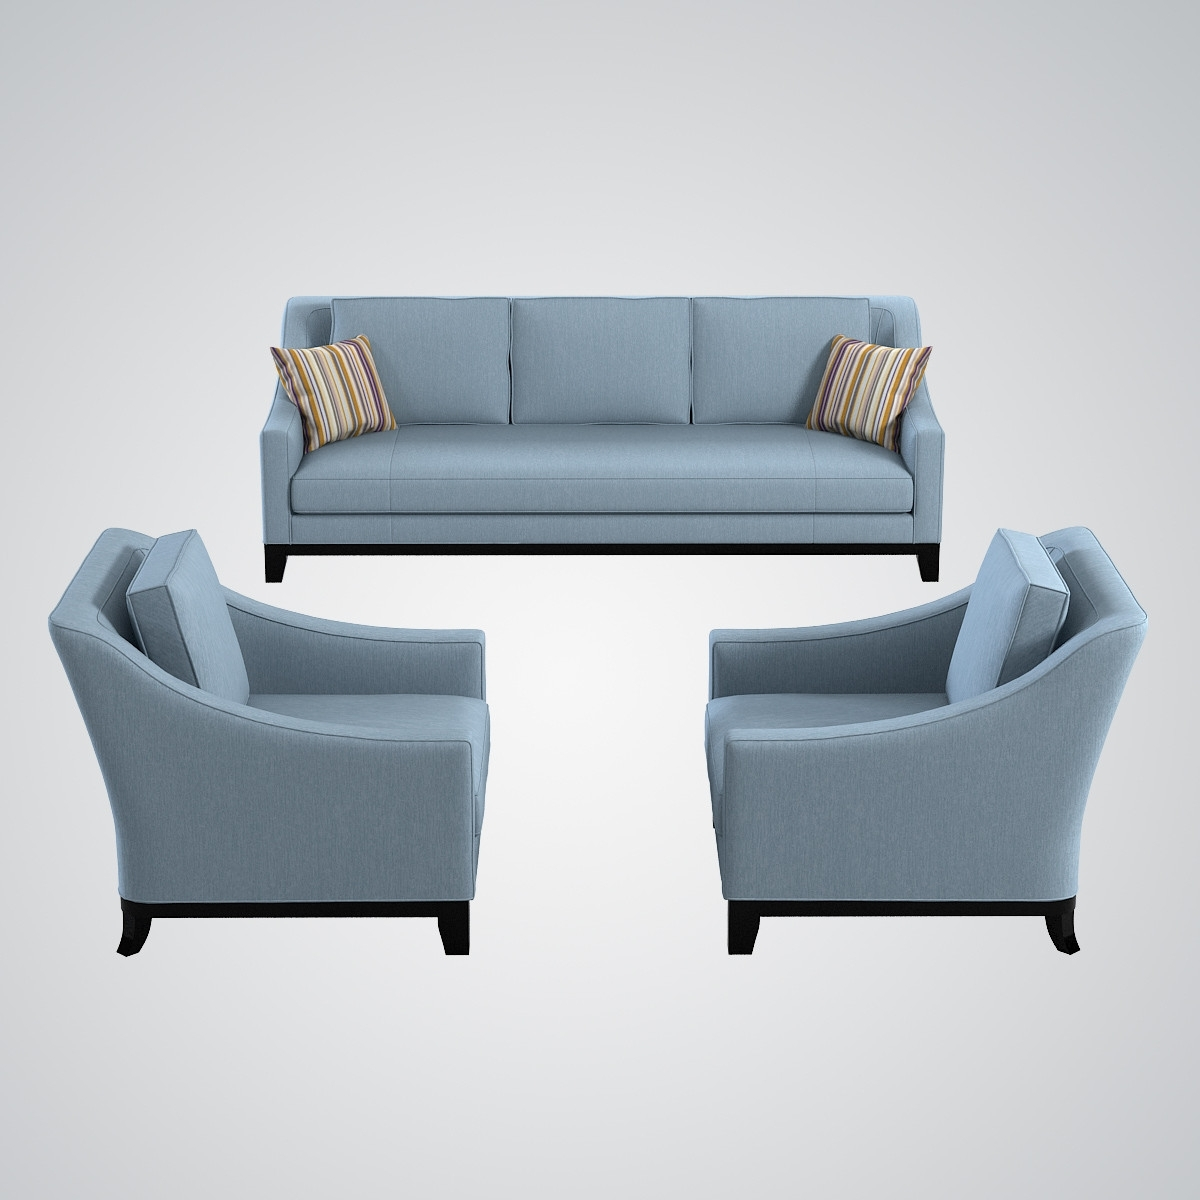 Sofa With Chairs For Recent Sofa And Chair Set – Modern Chairs Quality Interior  (View 10 of 15)